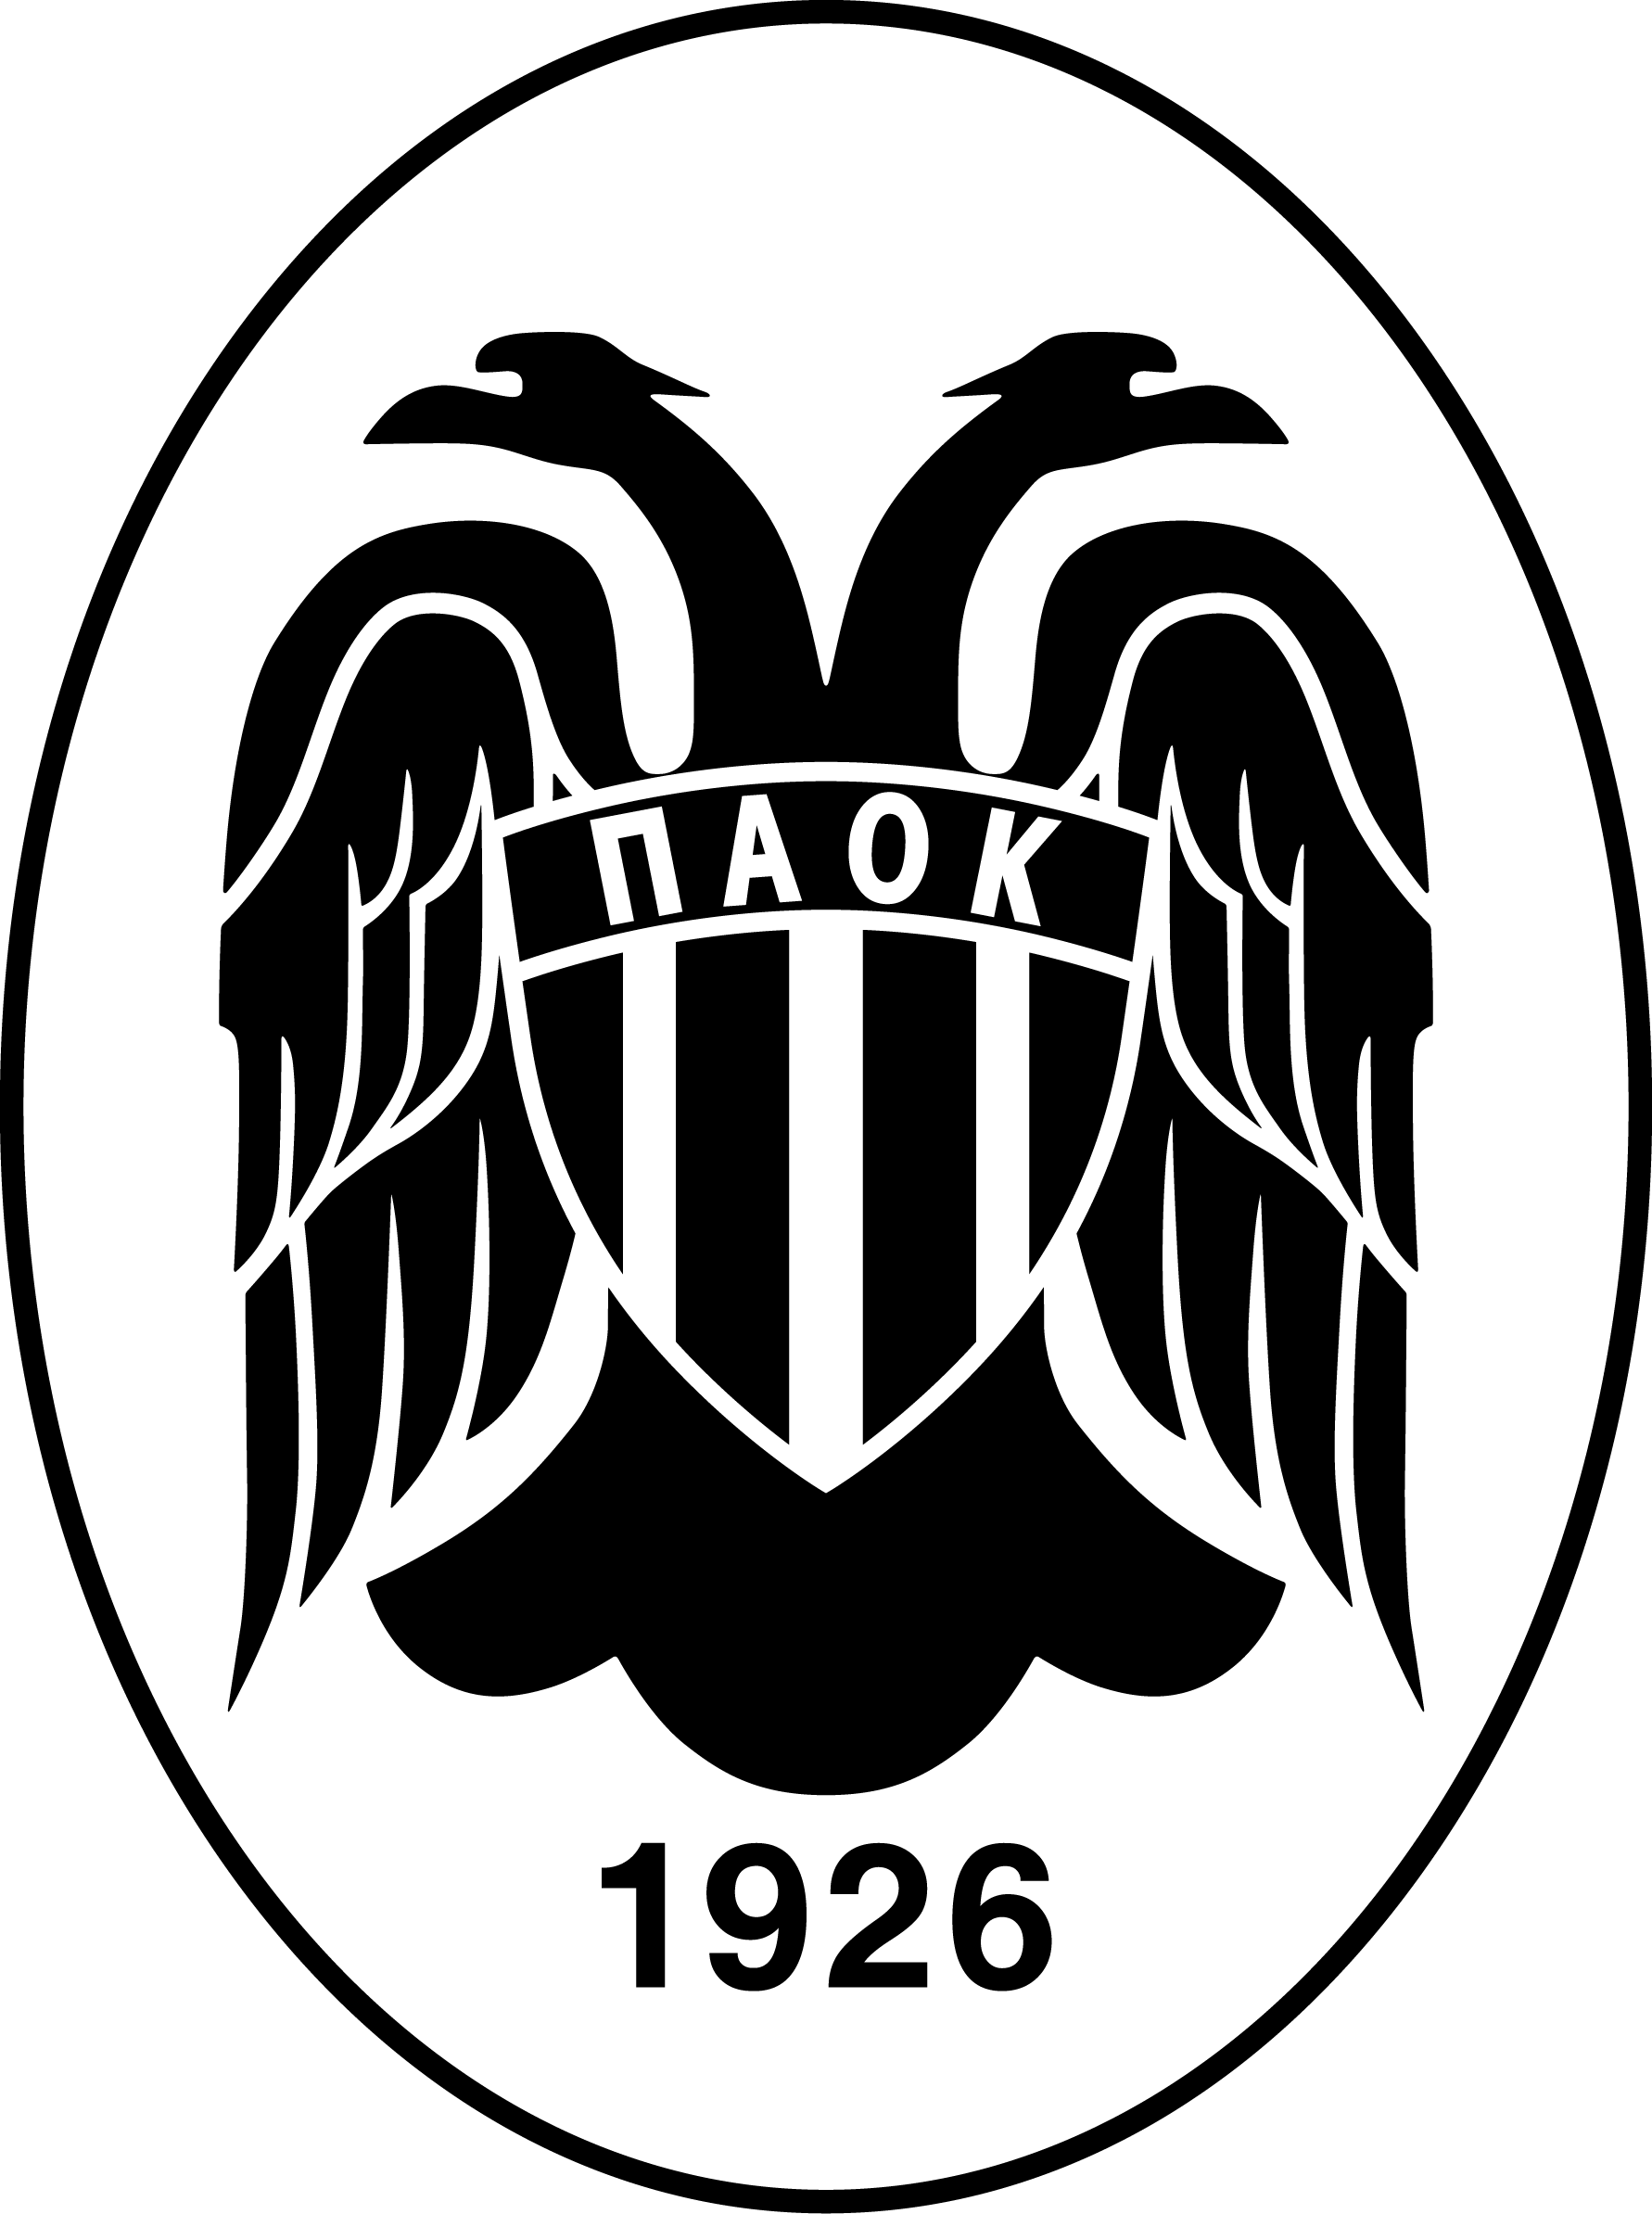 paok thessaloniki football logos pinterest logos